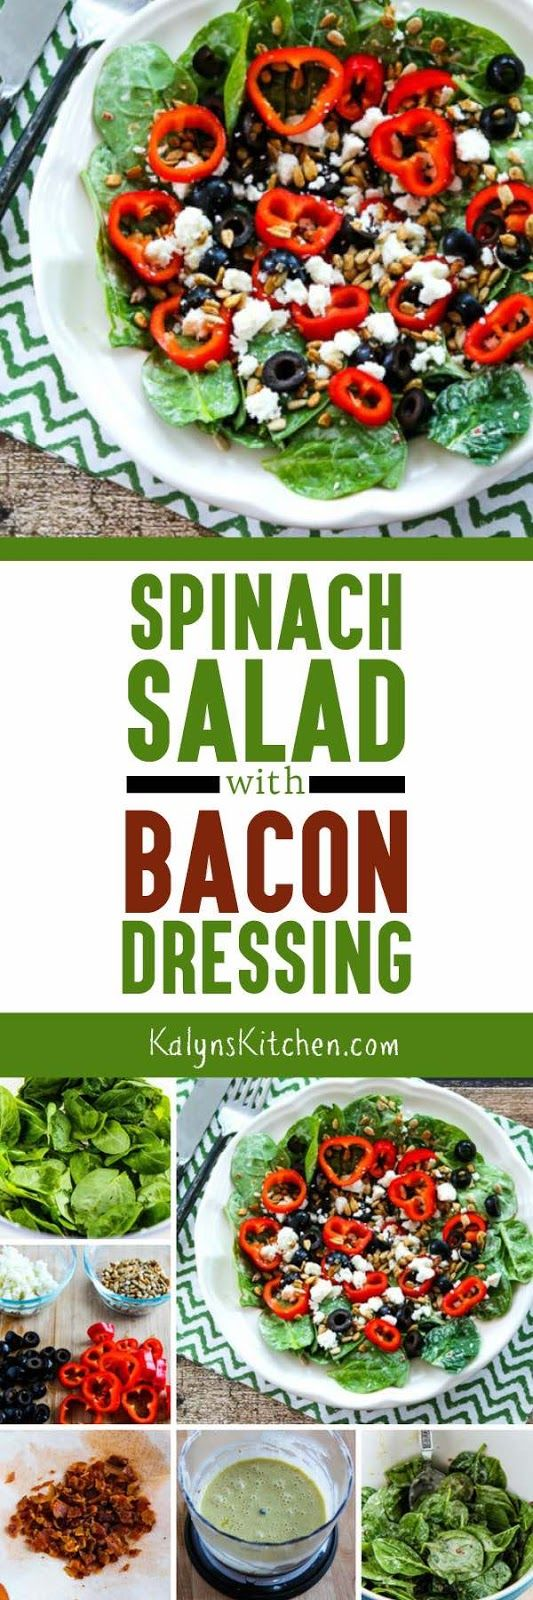 It only takes the tiniest bit of bacon to add great flavor to this Spinach Salad with Bacon Dressing! And this tasty salad idea is low-carb, gluten-free, South Beach Diet friendly, and with the right mayo and salad toppings this can be Whole 30 or Paleo. [found on KalynsKitchen.com]